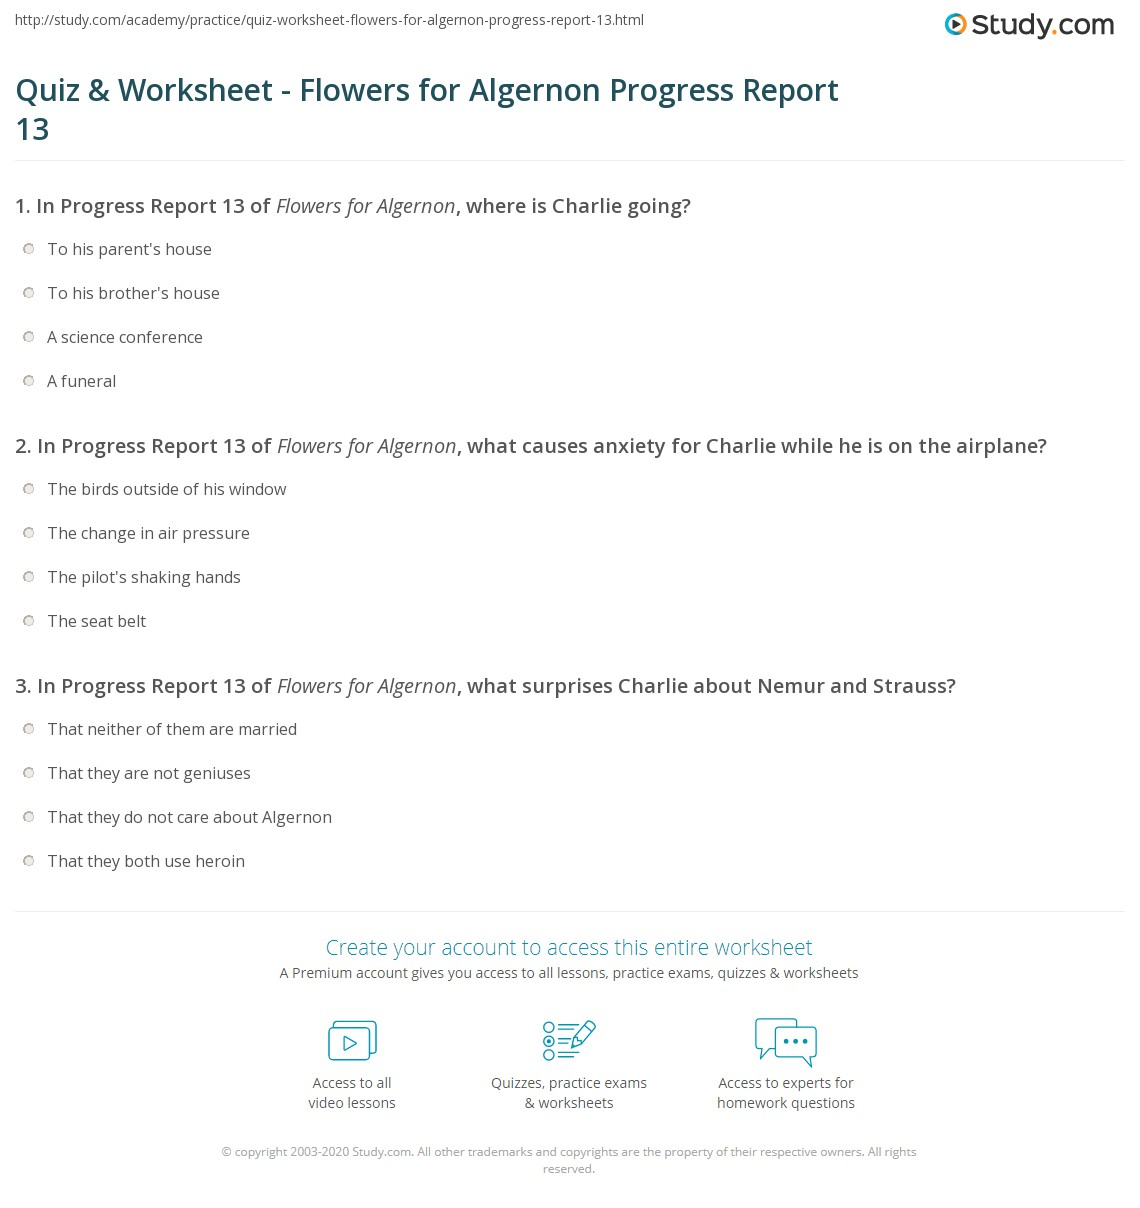 quiz worksheet flowers for algernon progress report com print flowers for algernon progress report 13 summary worksheet